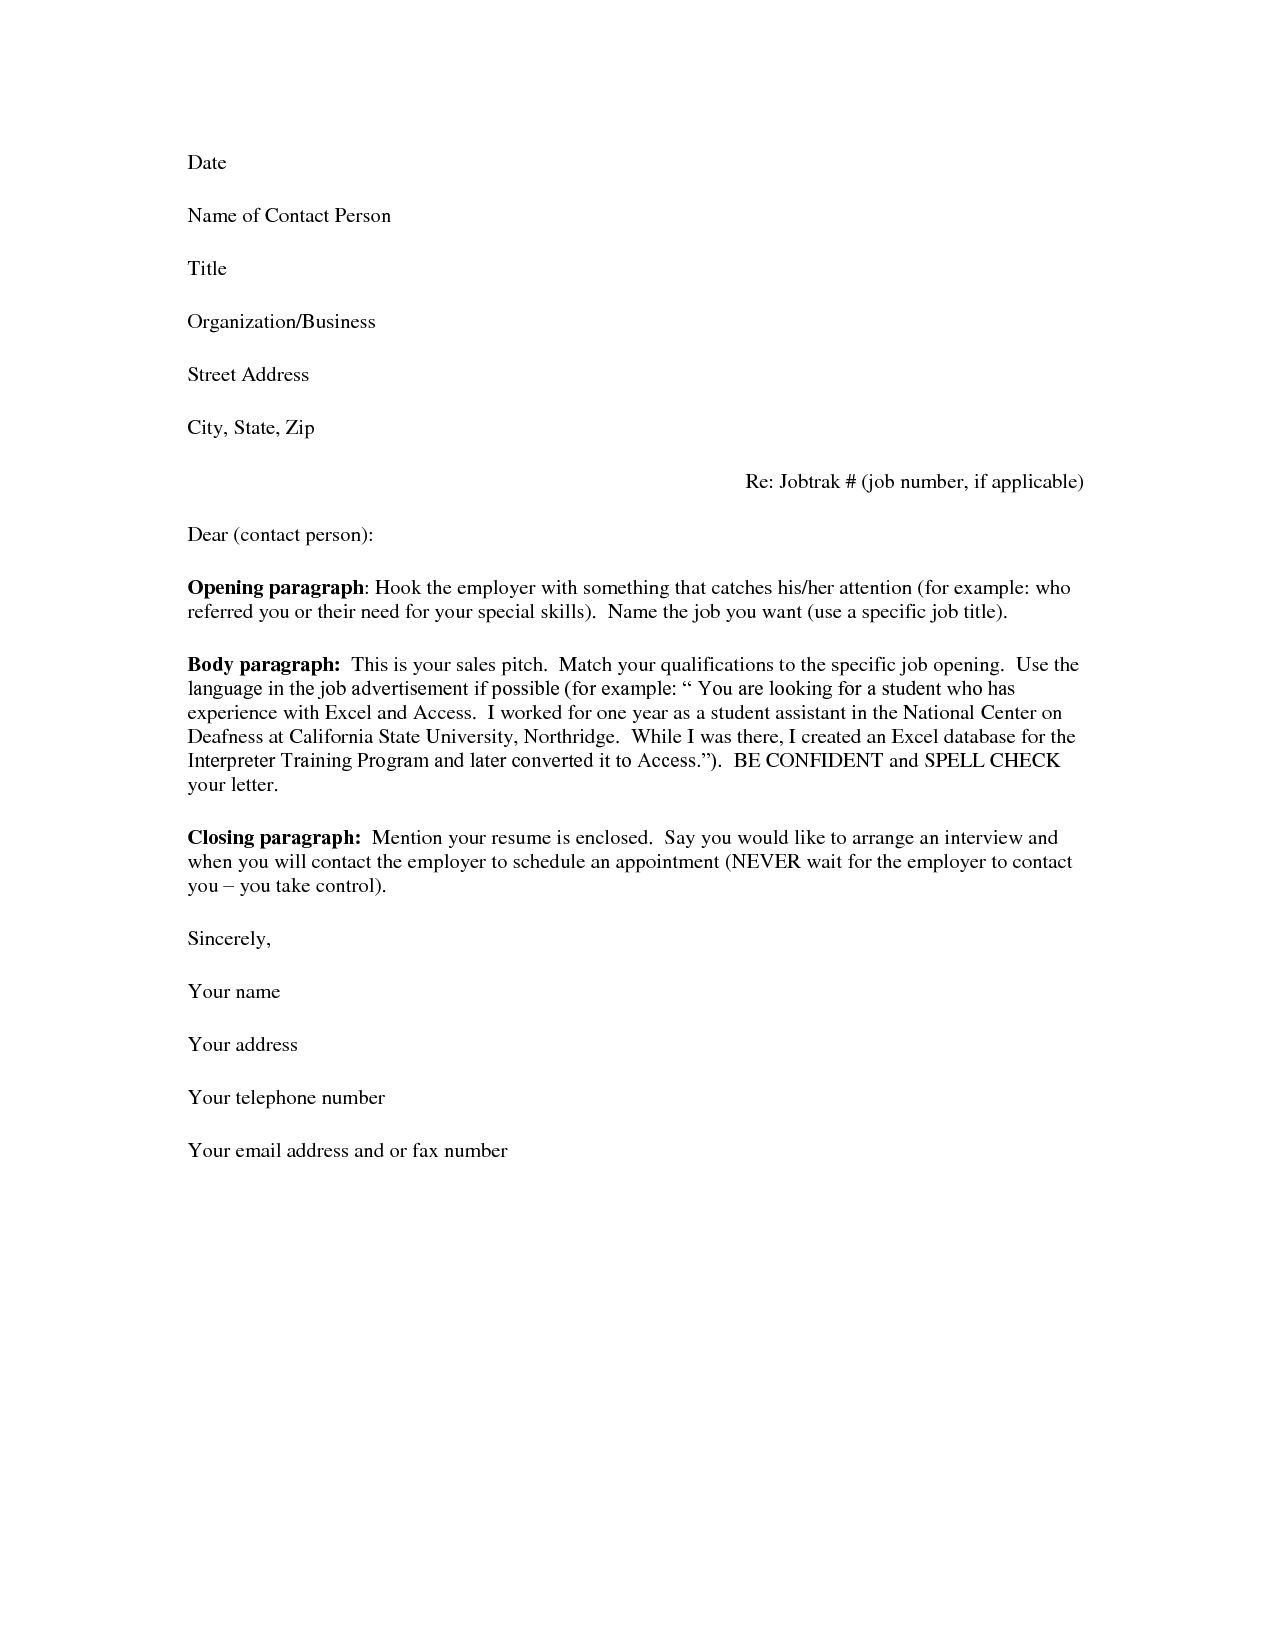 resume ending lines cover letter closure closing line | Home ...